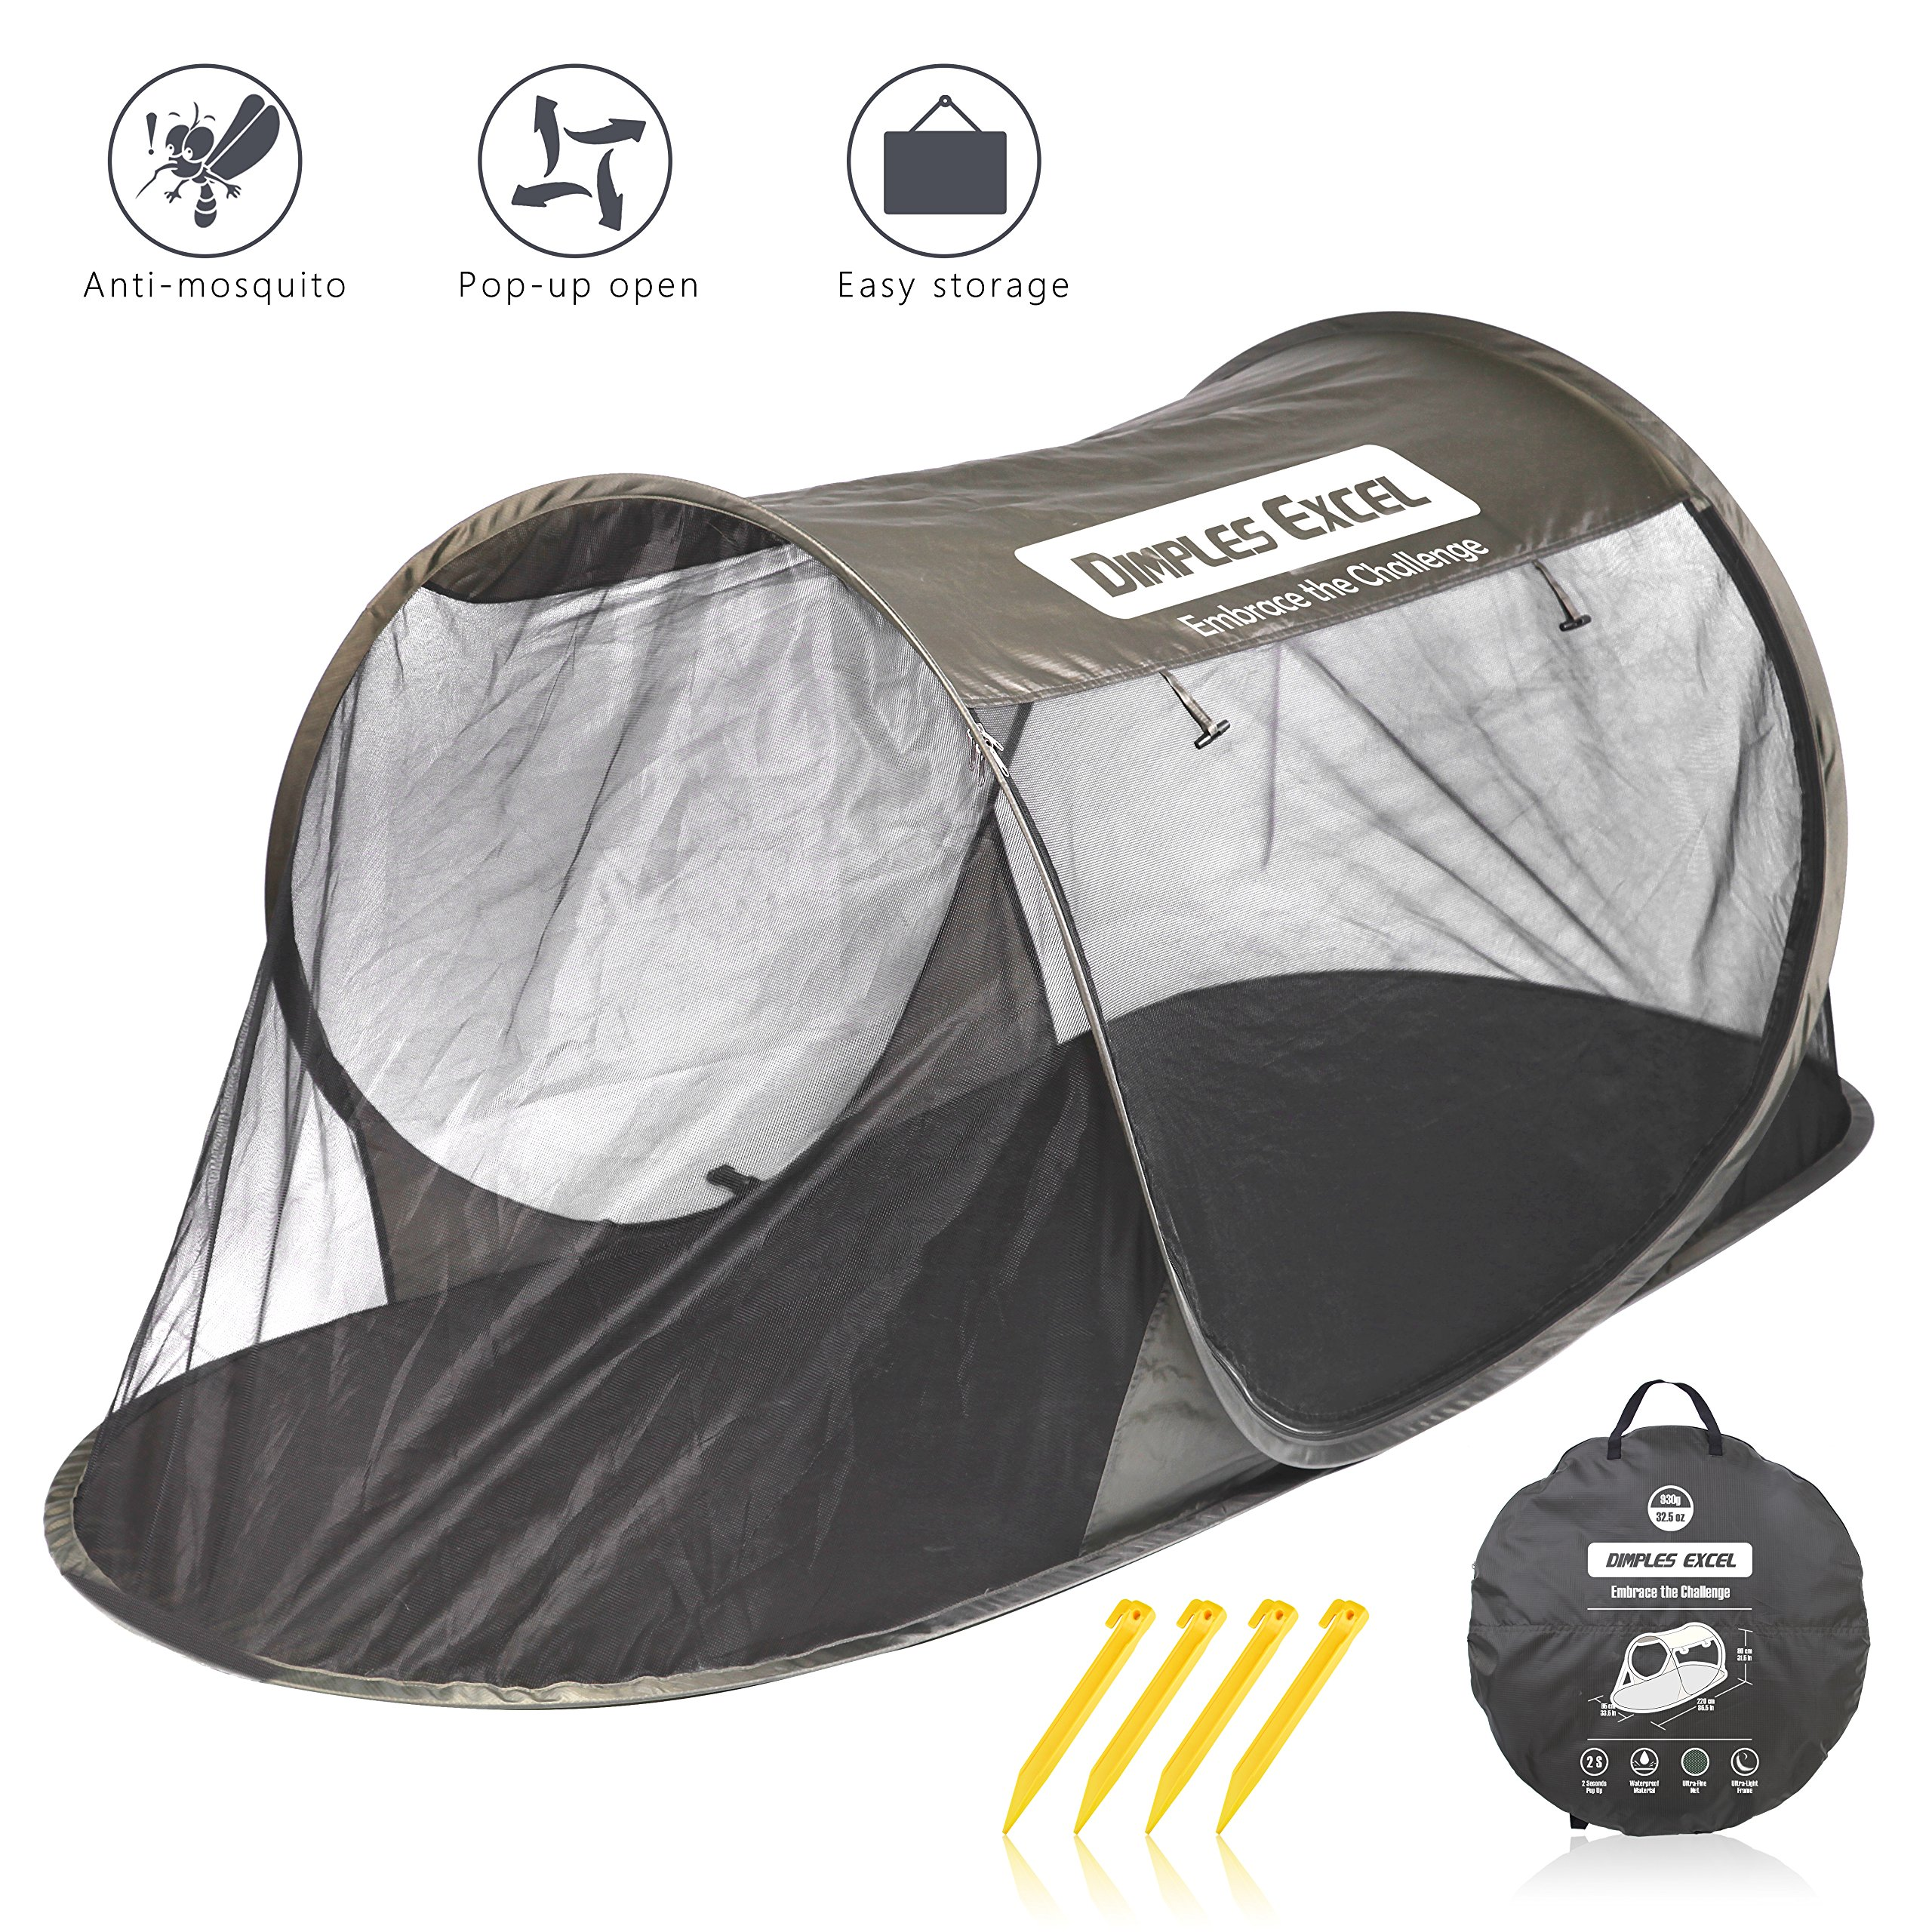 Mosquito Automatic Self expanding Traveling Backpacking